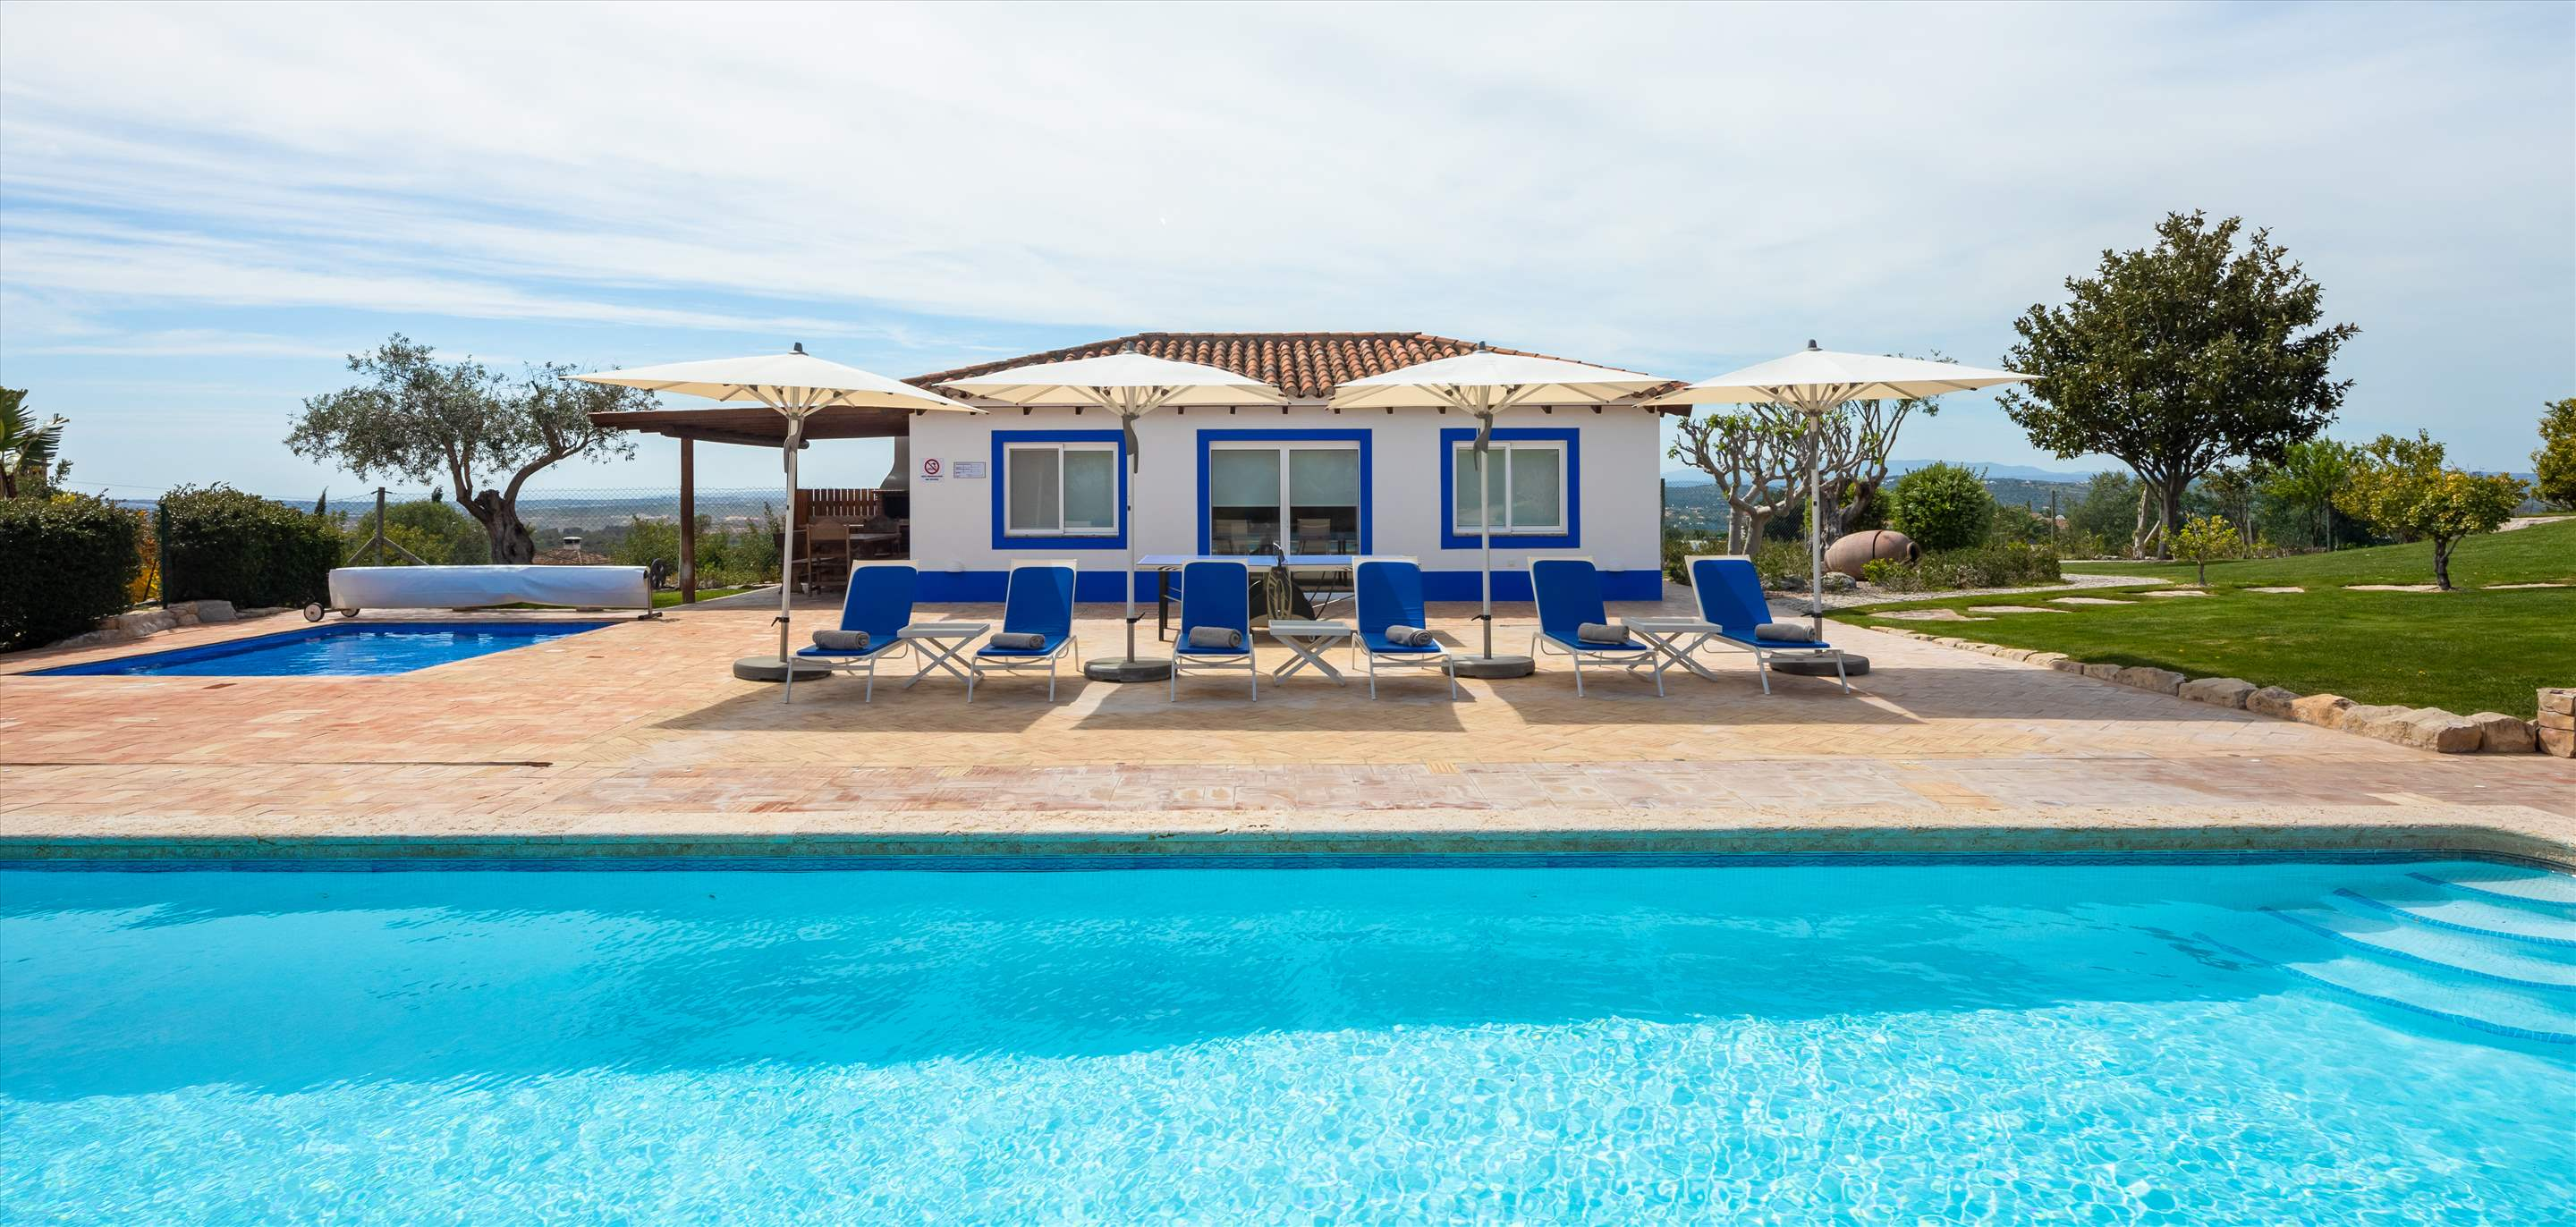 Casa da Montanha, 15-16 persons, 9 bedroom villa in Vilamoura Area, Algarve Photo #15